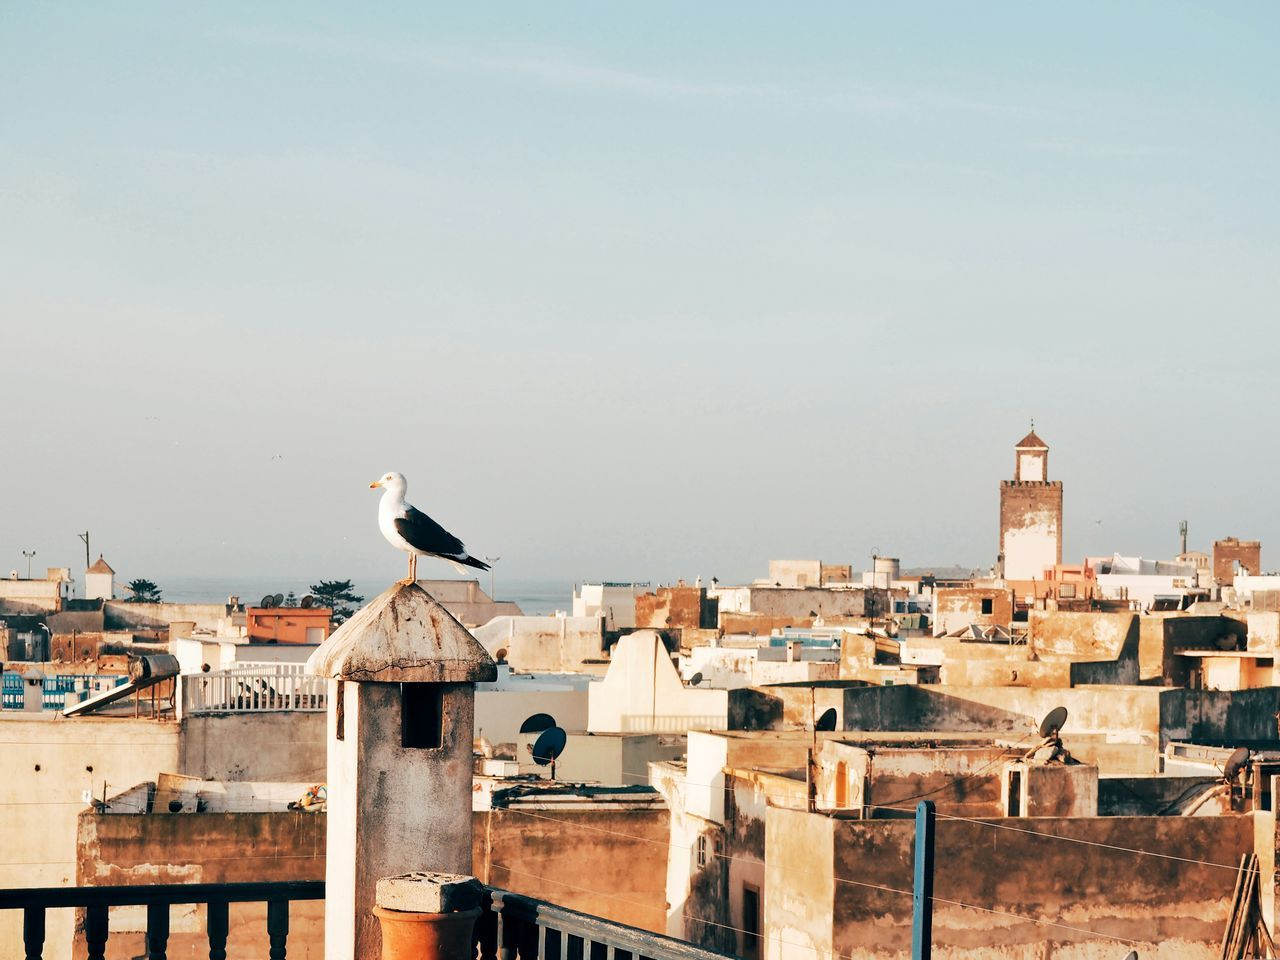 Bird Animals In The Wild Perching Architecture Animal Themes Animal Wildlife One Animal Built Structure Sky No People Roof City Outdoors Building Exterior Day Nature Building Terrace Seagull Coastal Coastal Town Essaouira Essaouira Bay Cityscape Old Town